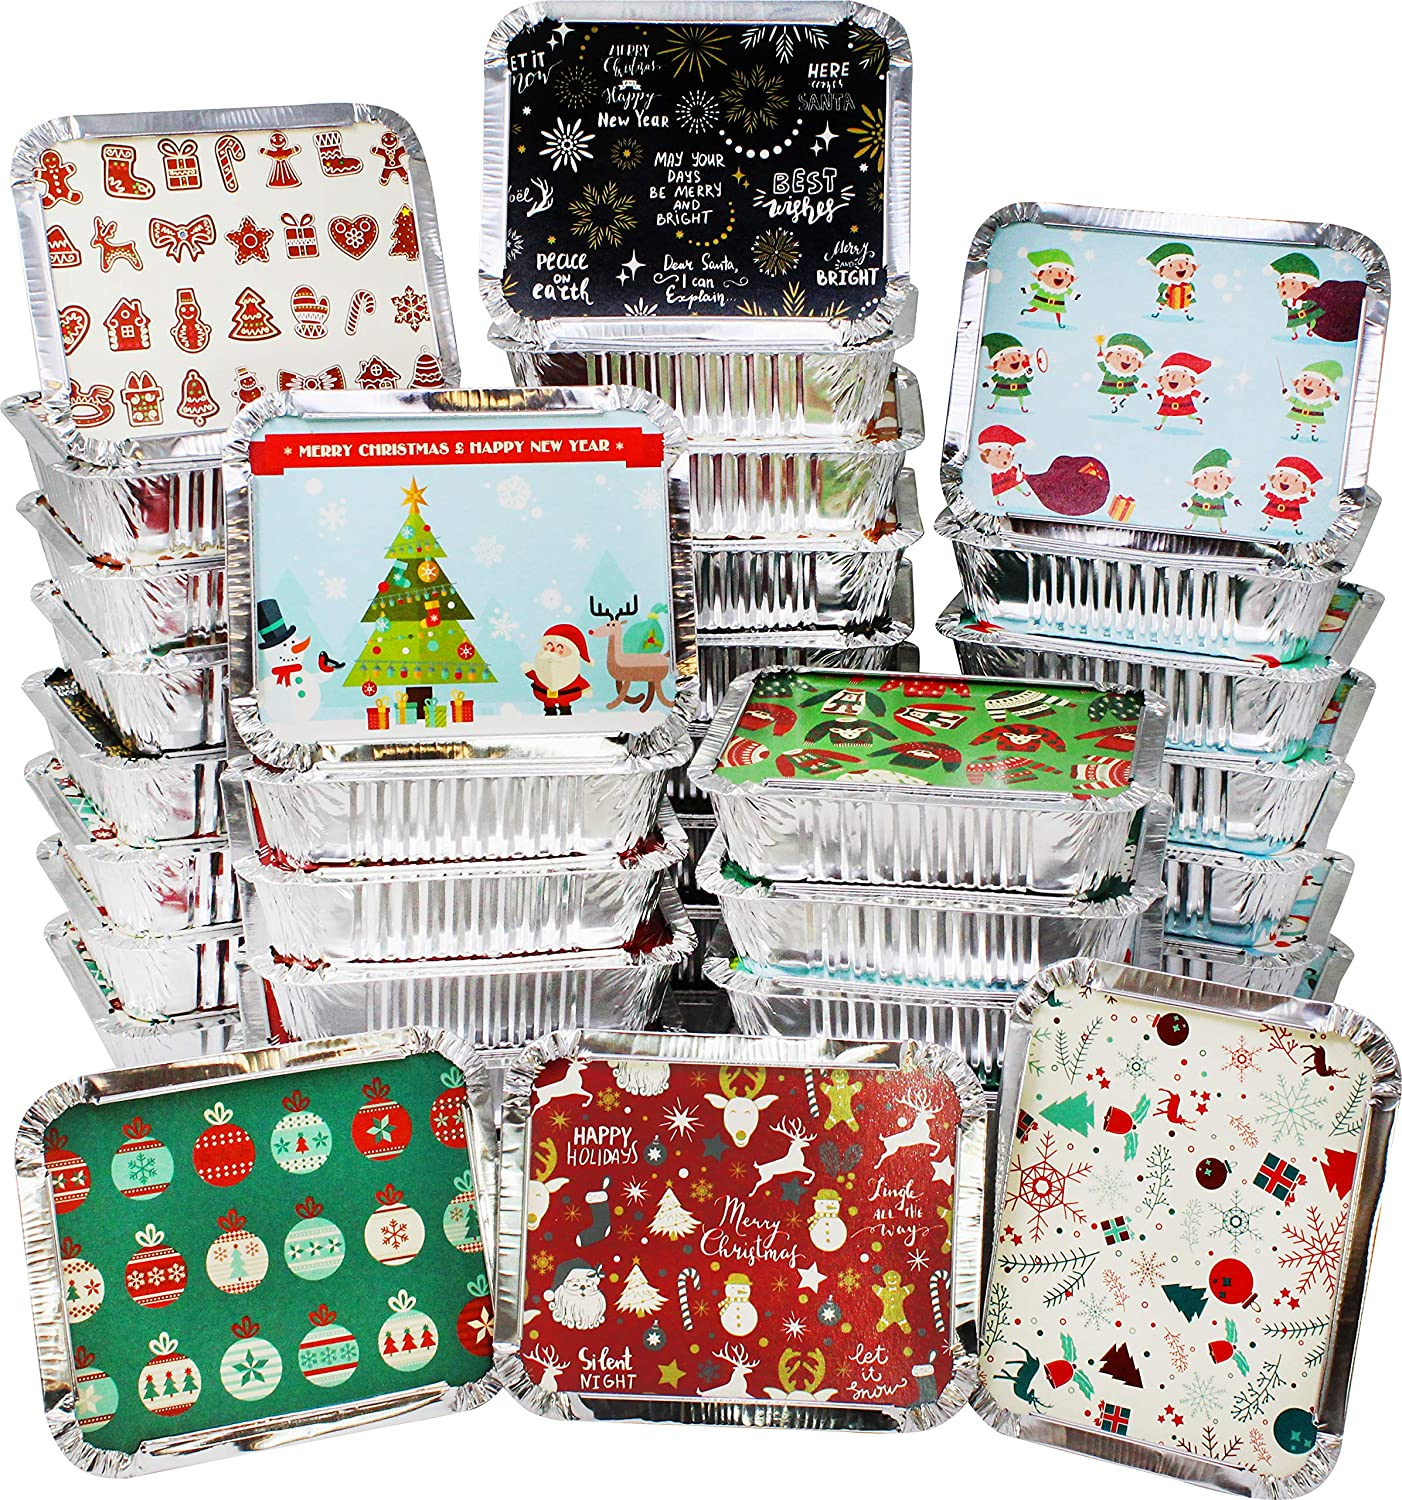 48 pieces Christmas Foil Containers for Food, Treats, Desserts Disposable Food Storage Pan for Party Leftovers or Food Exchange